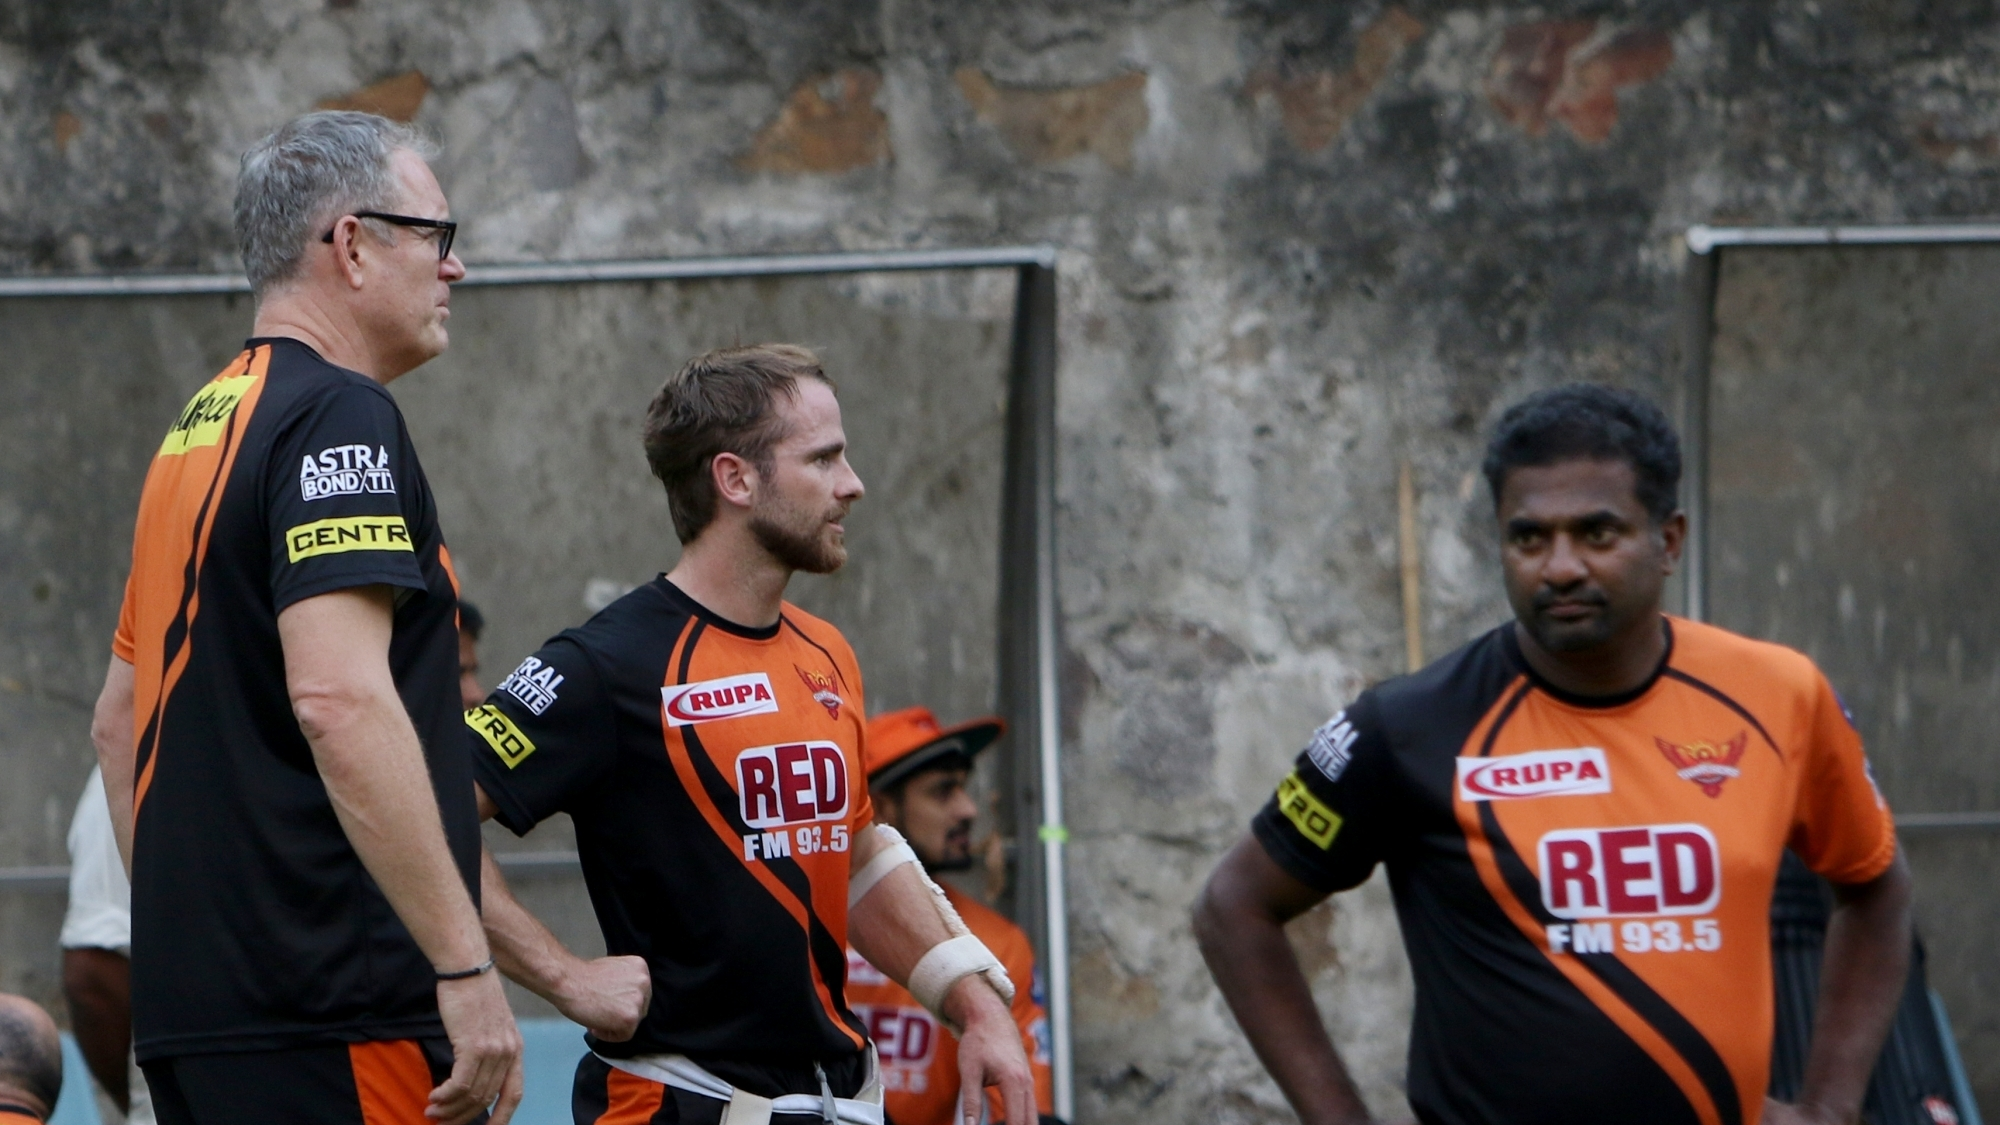 IPL 2018: Kane Williamson's captaincy has helped SRH immensely, says Tom Moody